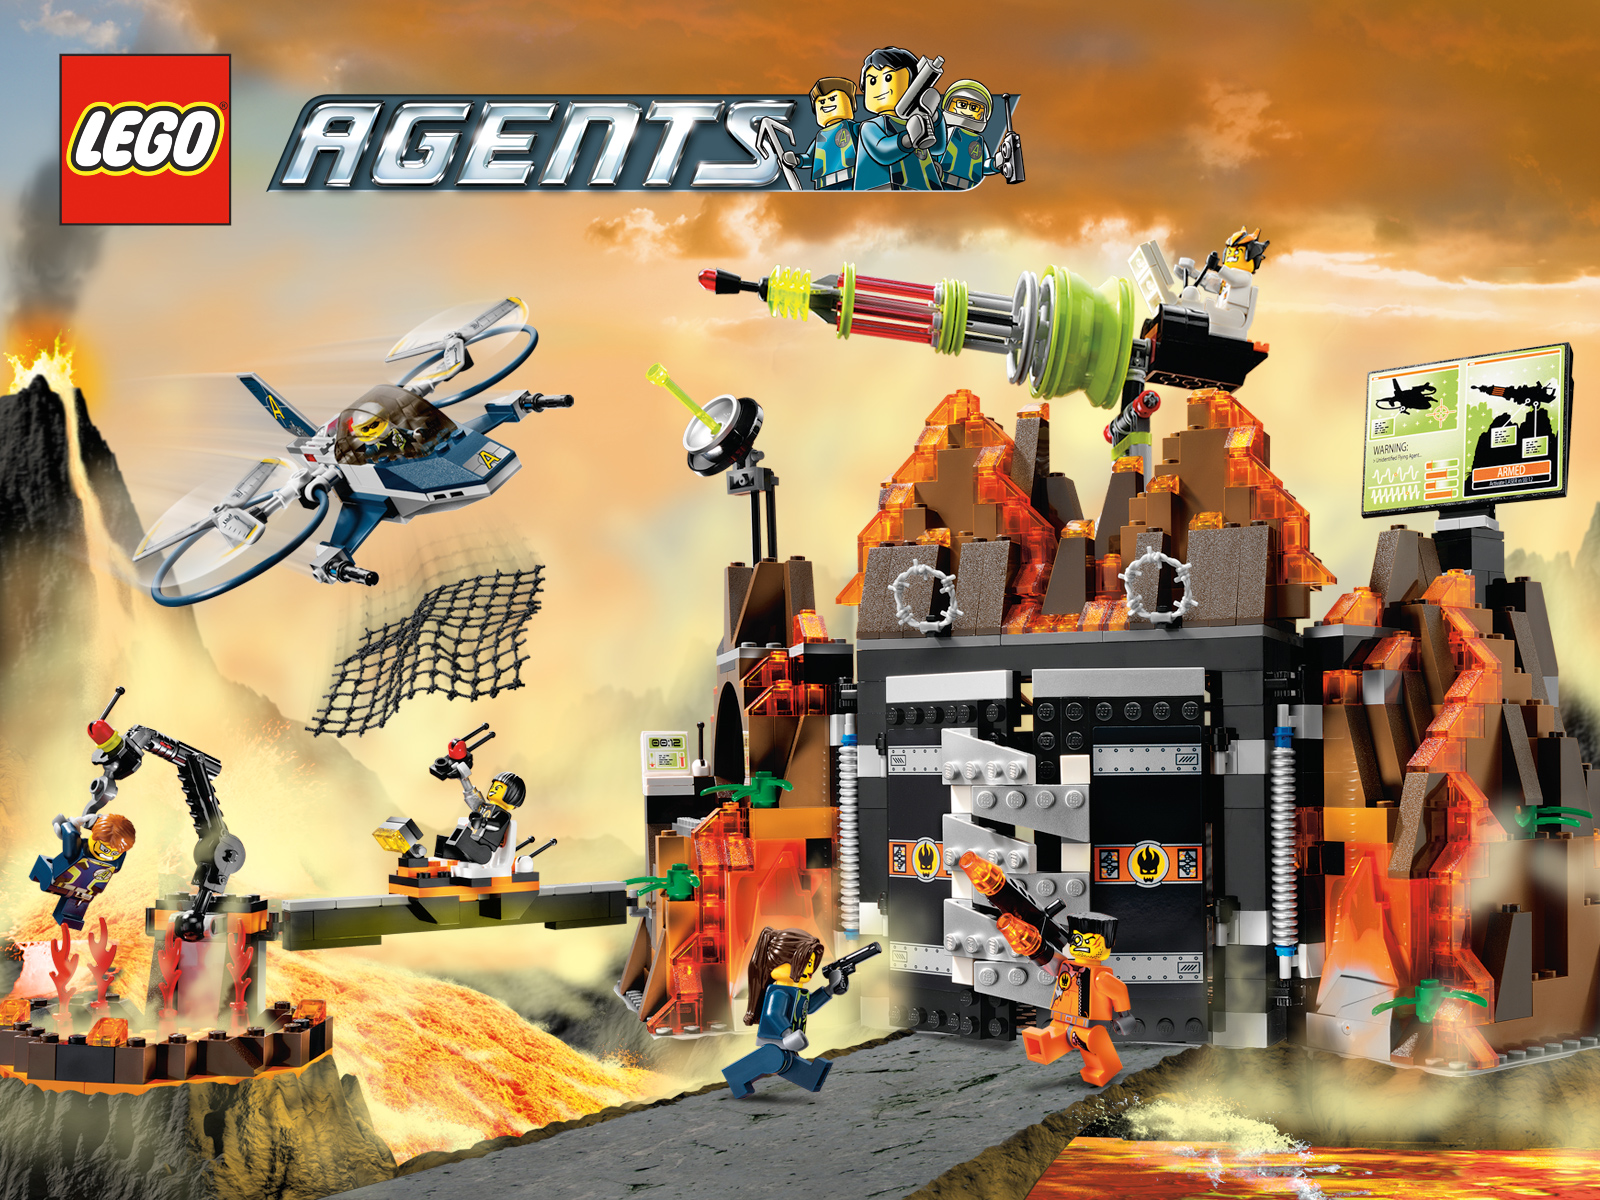 lego agents free desktop wallpapers for widescreen hd and mobile. Black Bedroom Furniture Sets. Home Design Ideas